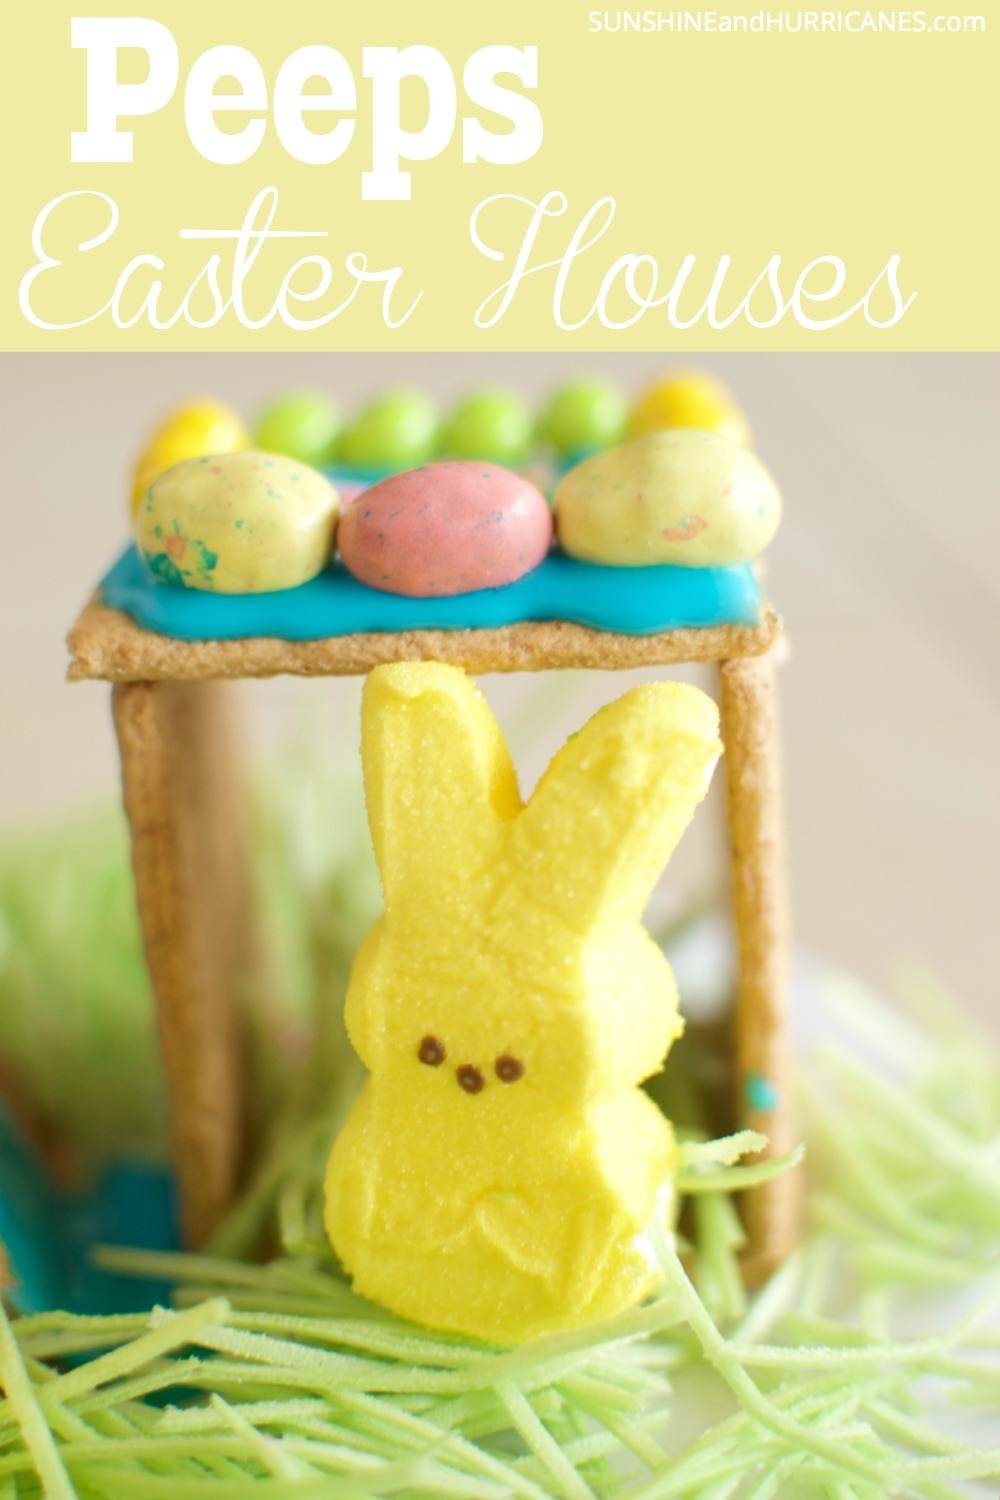 Looking for a fun Easter activity for you kids? These adorable Peeps houses are easy to make and can keep kids busy for hours. They'll be able to use their creativity coming up with a whole little neighborhood for their Peeps and then use their imaginations to have all the Peeps playing together. A great way to use extra Easter candy. Peeps Easter Houses. SunshineandHurricanes.com